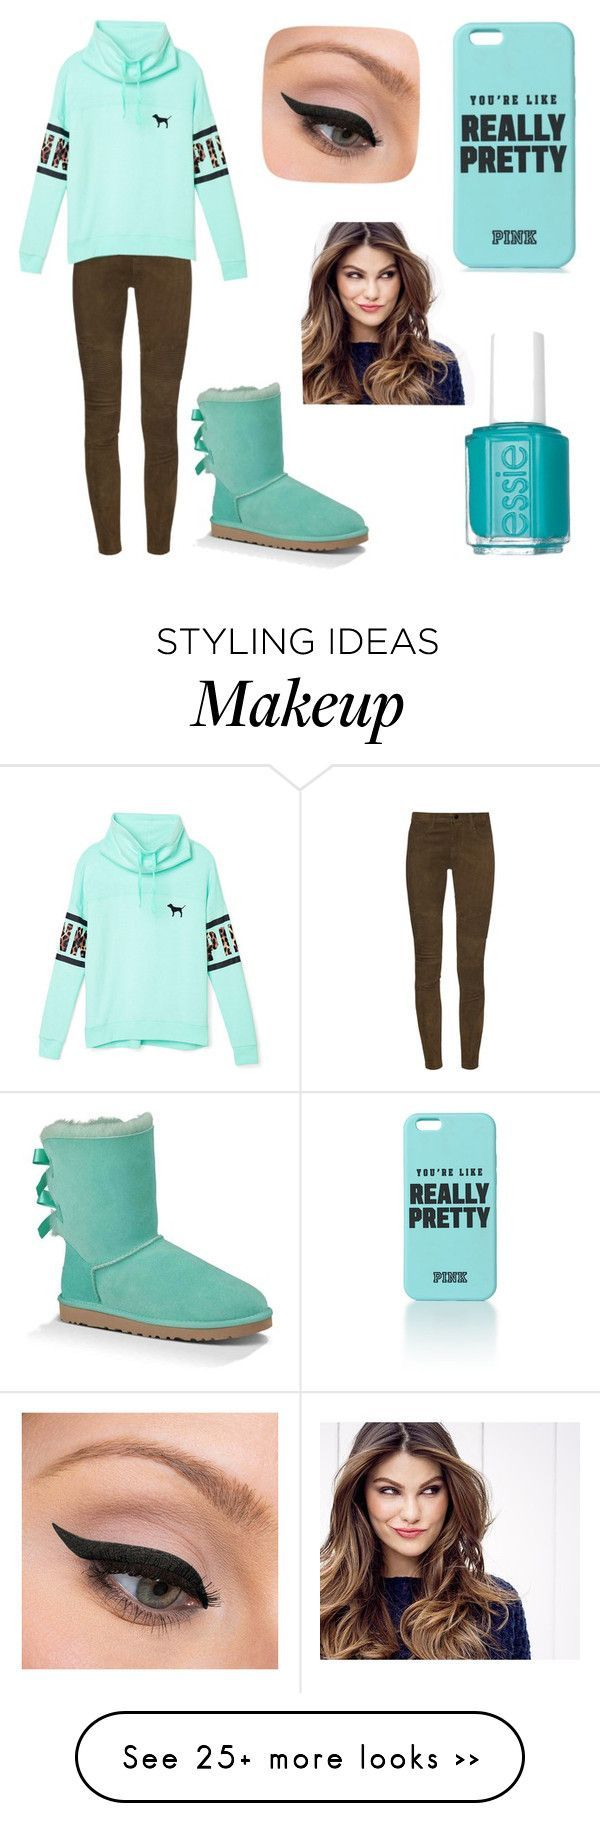 """Really Pretty"" by taylor-loves-clothes on Polyvore featuring J Brand, Victoria's Secret PINK, UGG Australia, Essie, LORAC and ULTA"